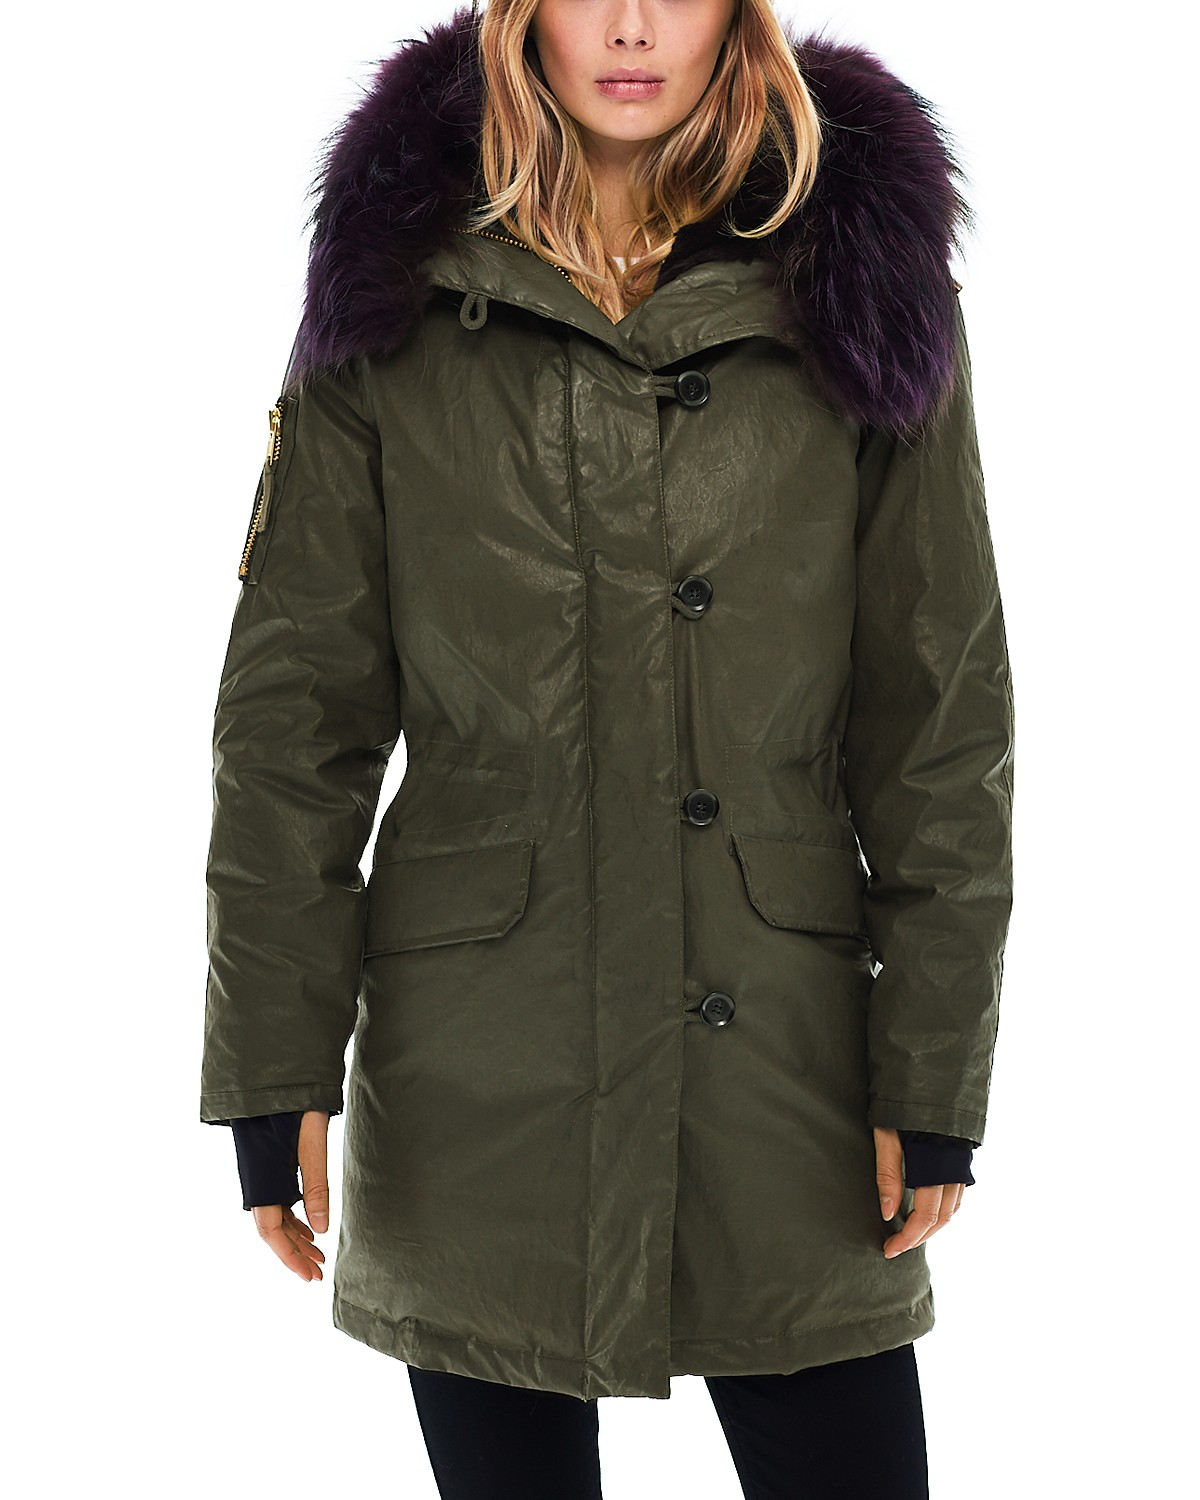 the most fashionable winter coats of the season rh phillystylemag com